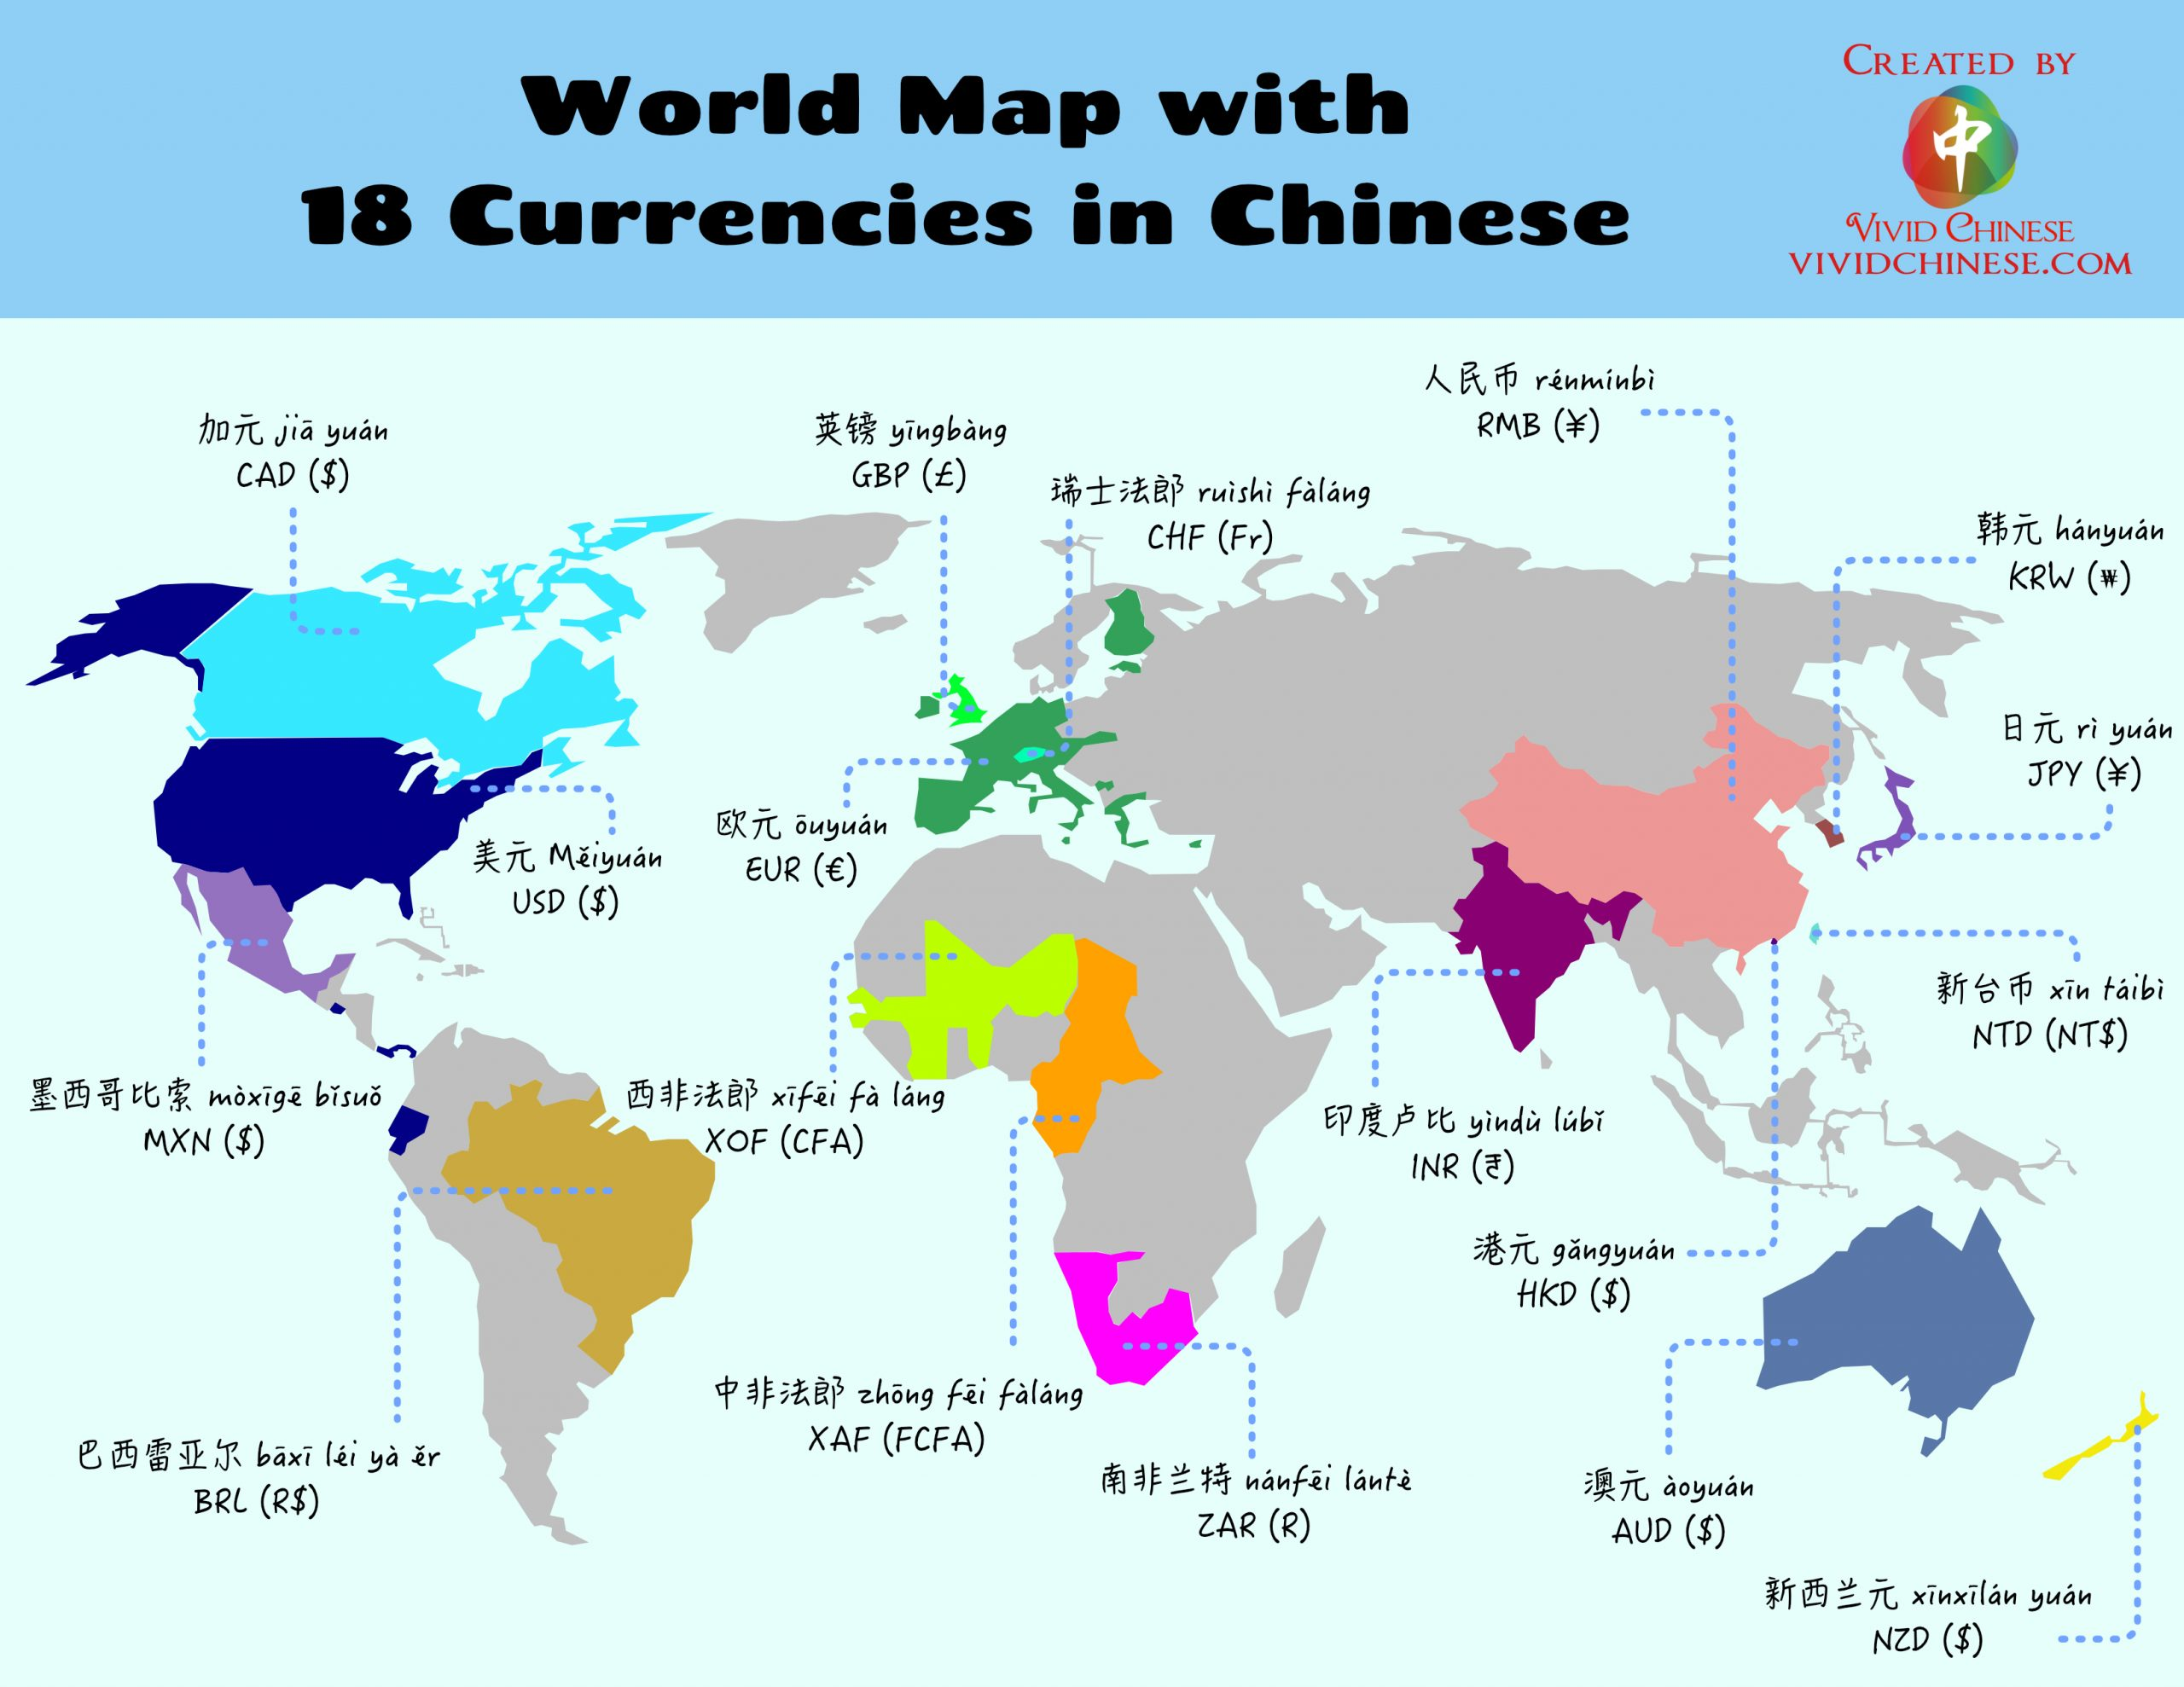 Here is a list of 15 currencies in Chinese and where they are used around the world